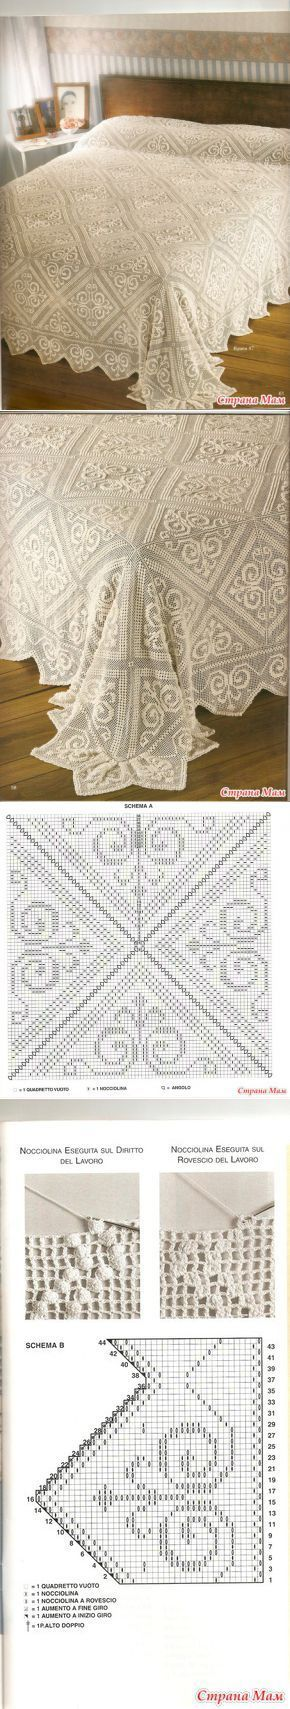 Follow the diagram below the bedspread to make the filet crochet pattern